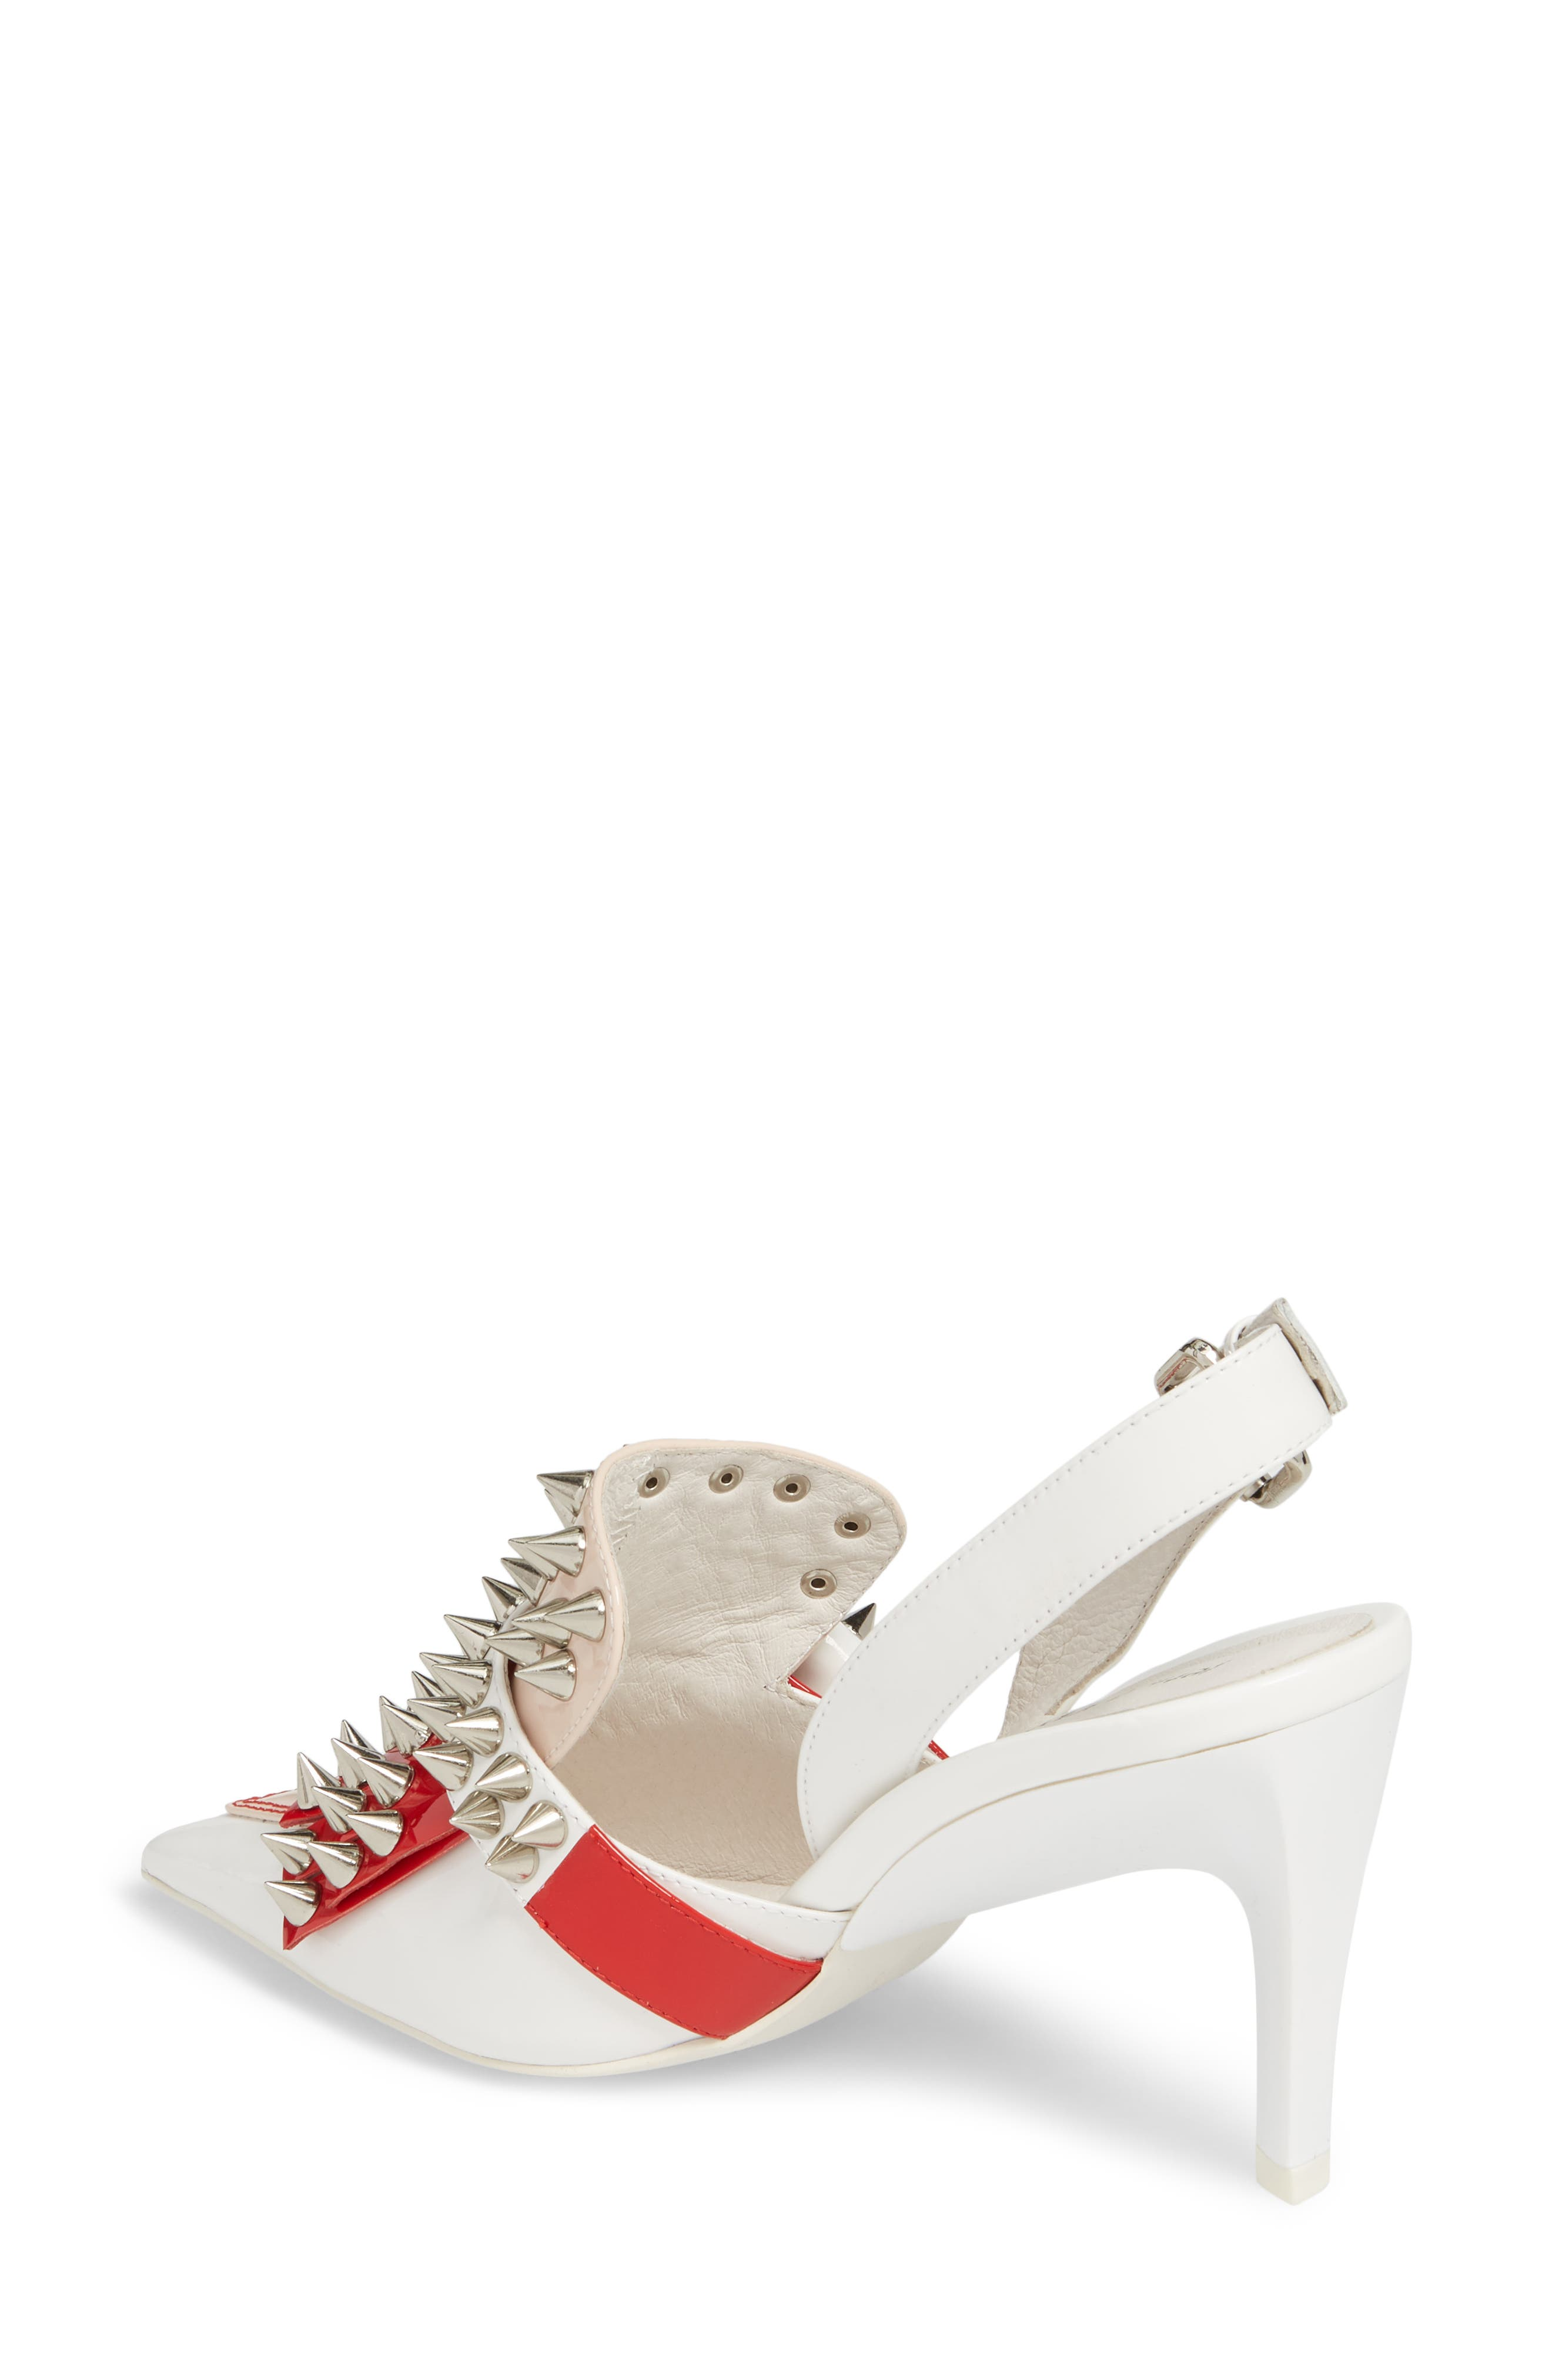 Vicious-2 Studded Loafer Pump,                             Alternate thumbnail 2, color,                             WHITE/ RED/ PINK PATENT/ WHITE